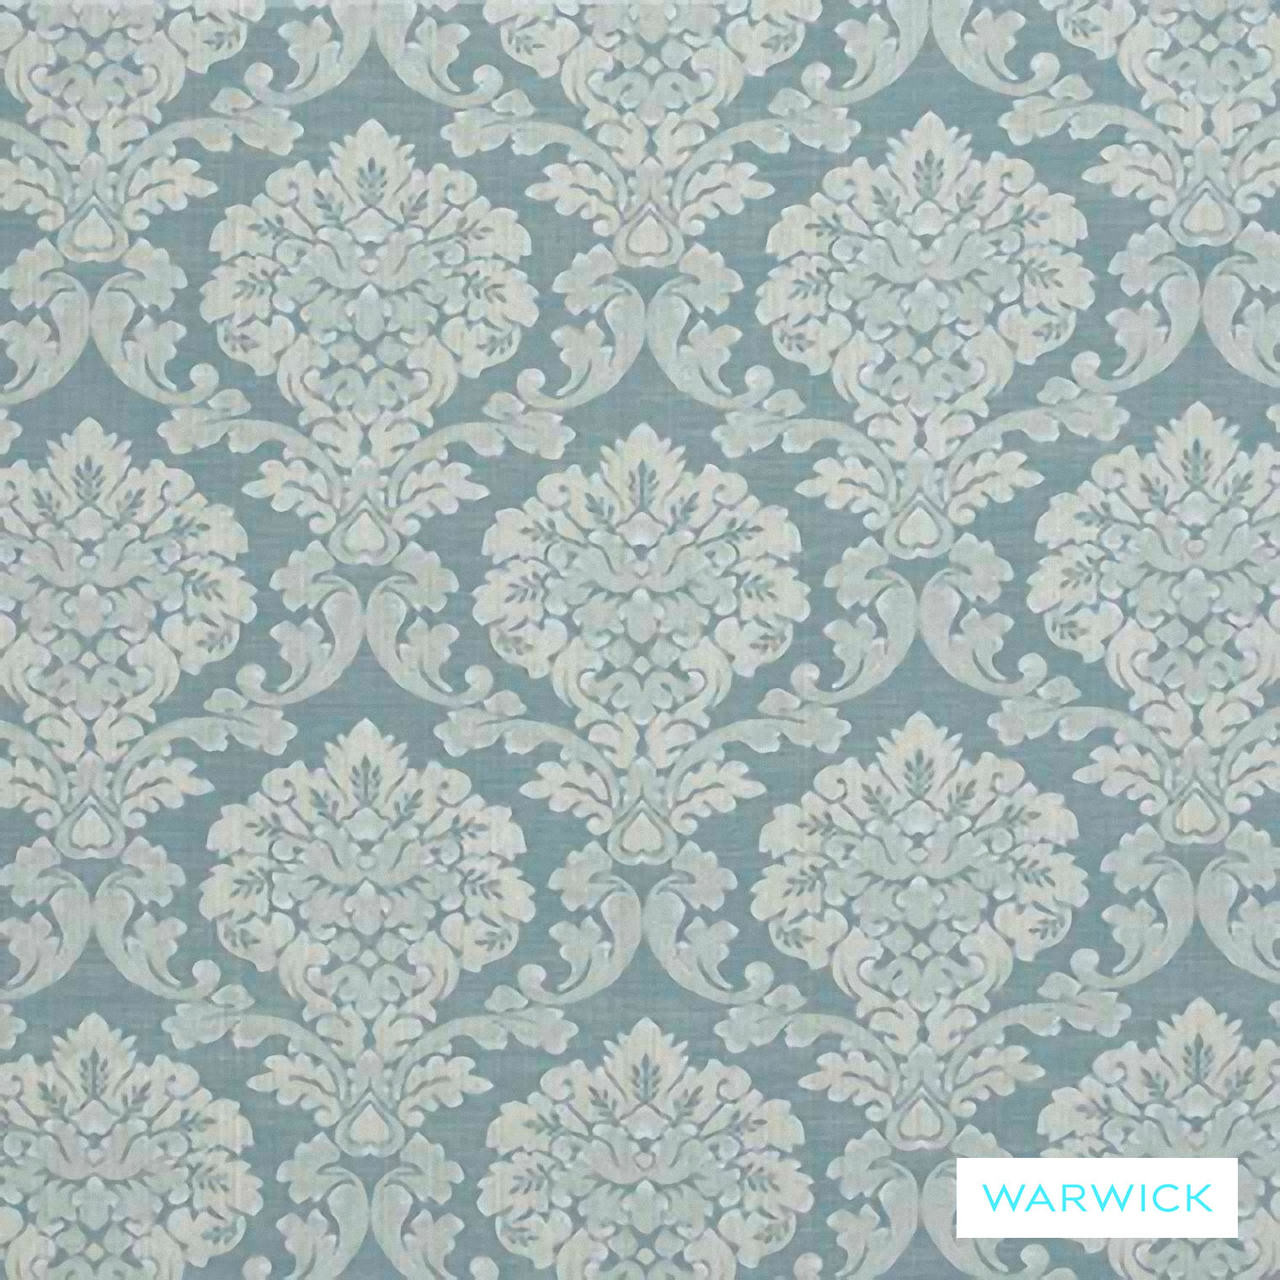 Soft Furnishing Fabric Warwick Winslow Duck Egg